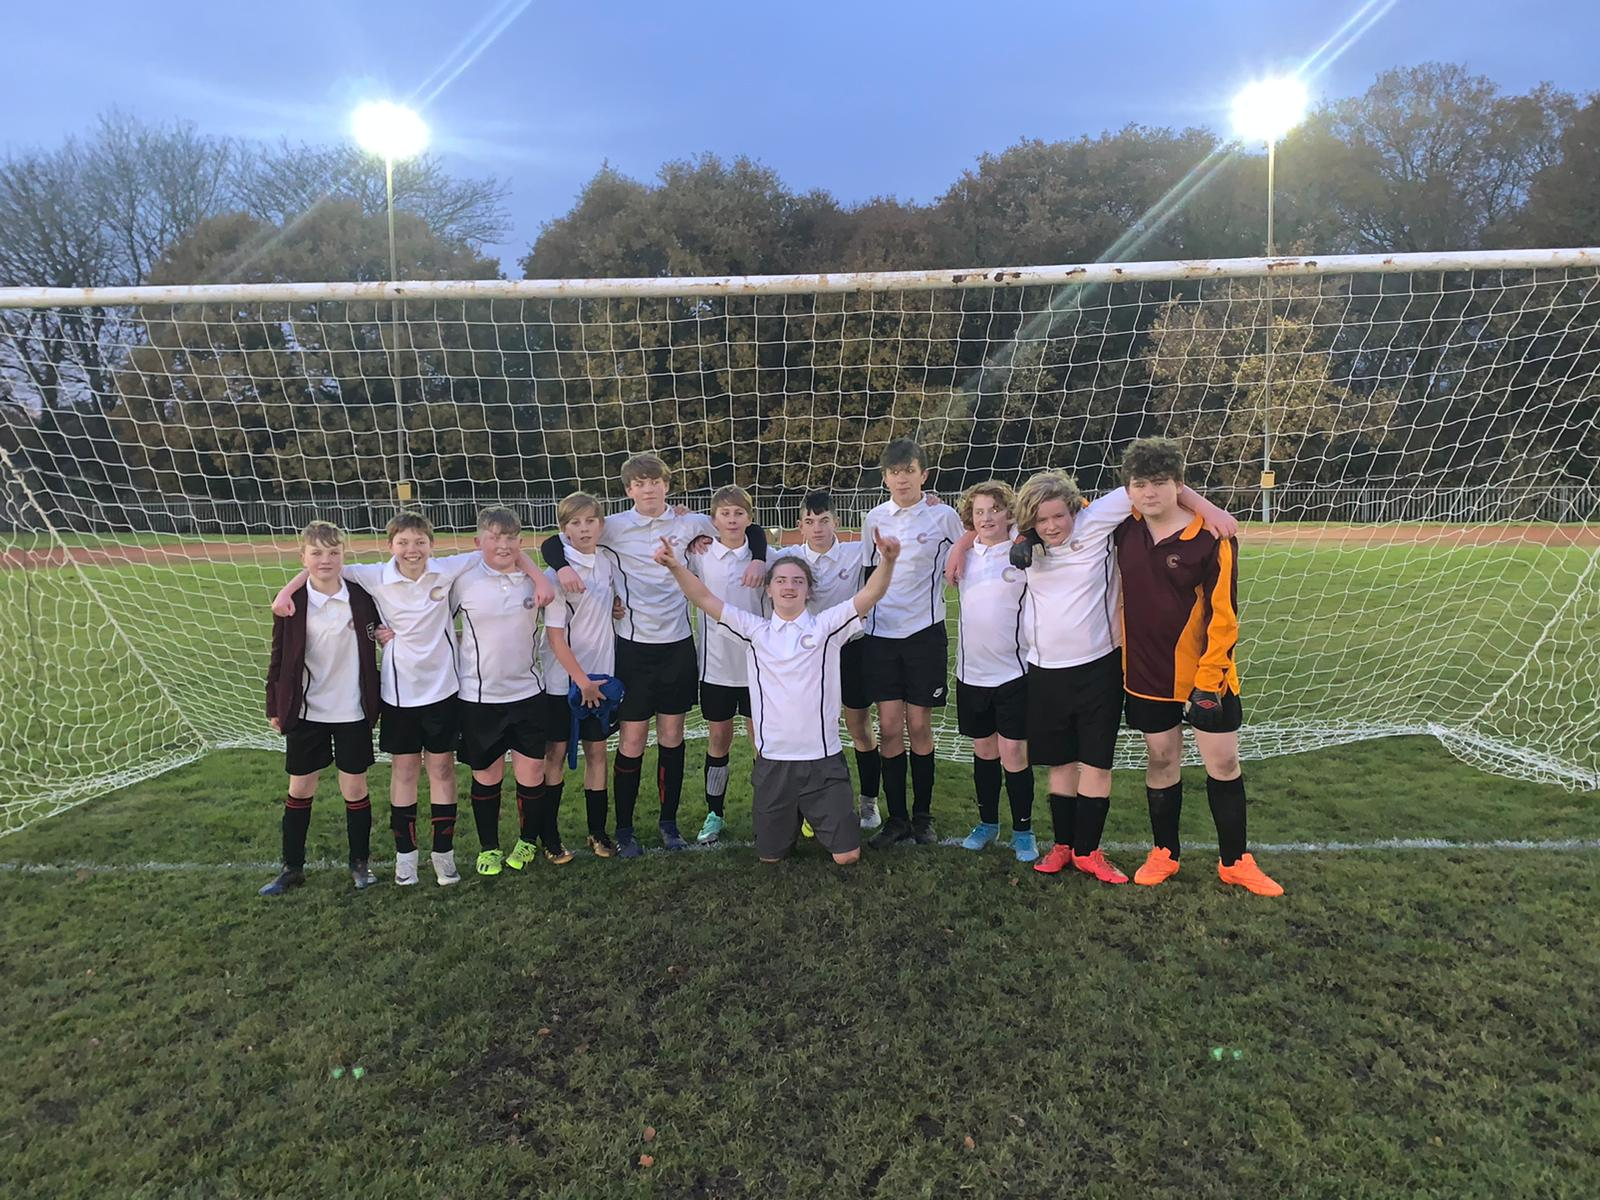 Year 9 St. Cuthbert's Boys Football Team